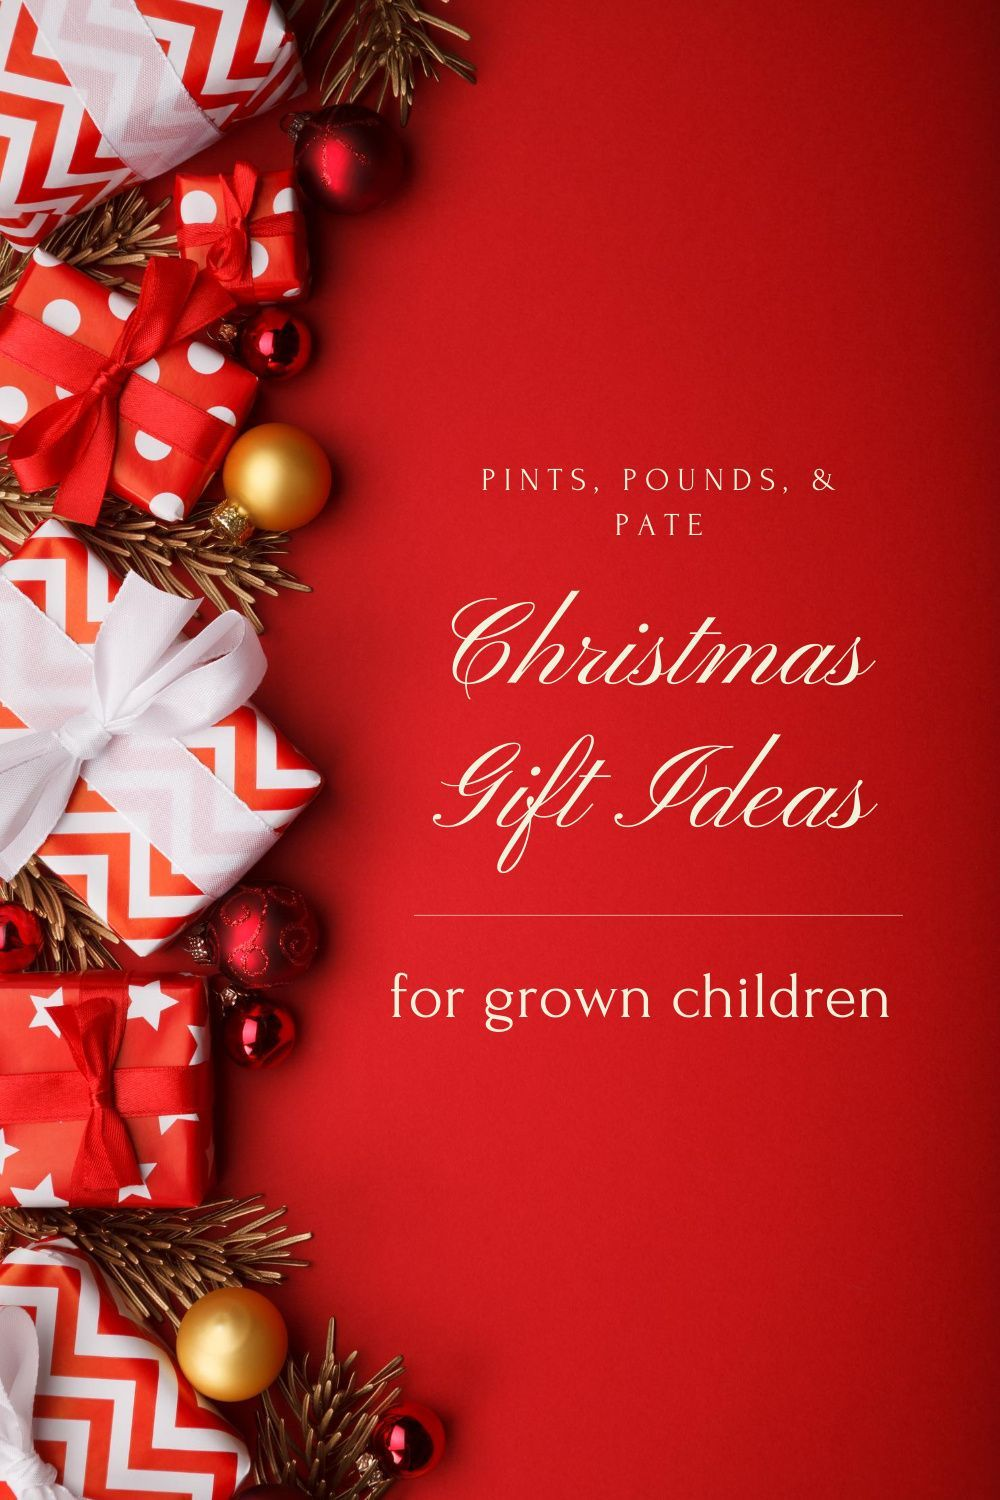 Christmas Gift Ideas For Grown Children In 2020 Traditional Christmas Ornaments Christmas Gifts For Adults Simple Christmas Cards